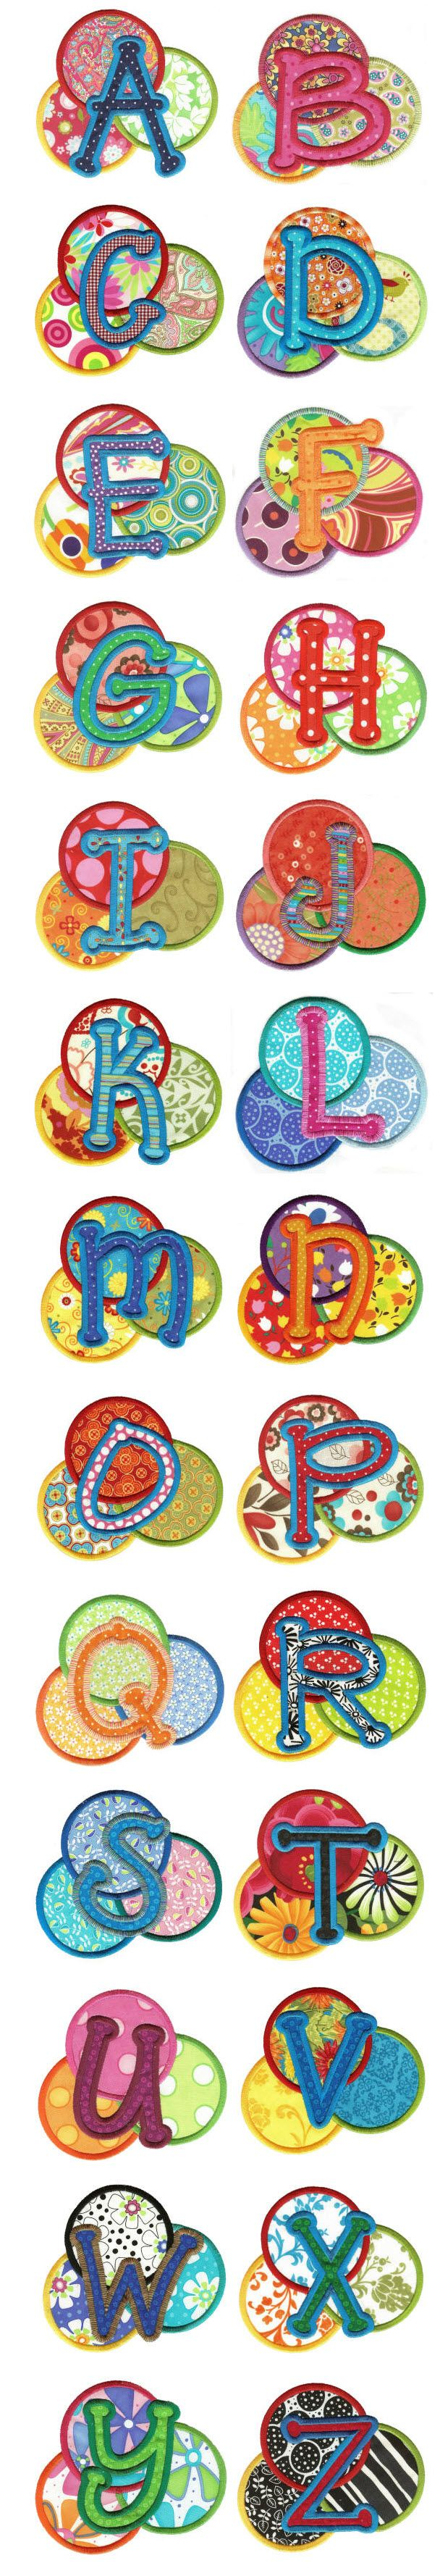 Delightful Dots Applique Alphabet machine embroidery designs by Designs by JuJu